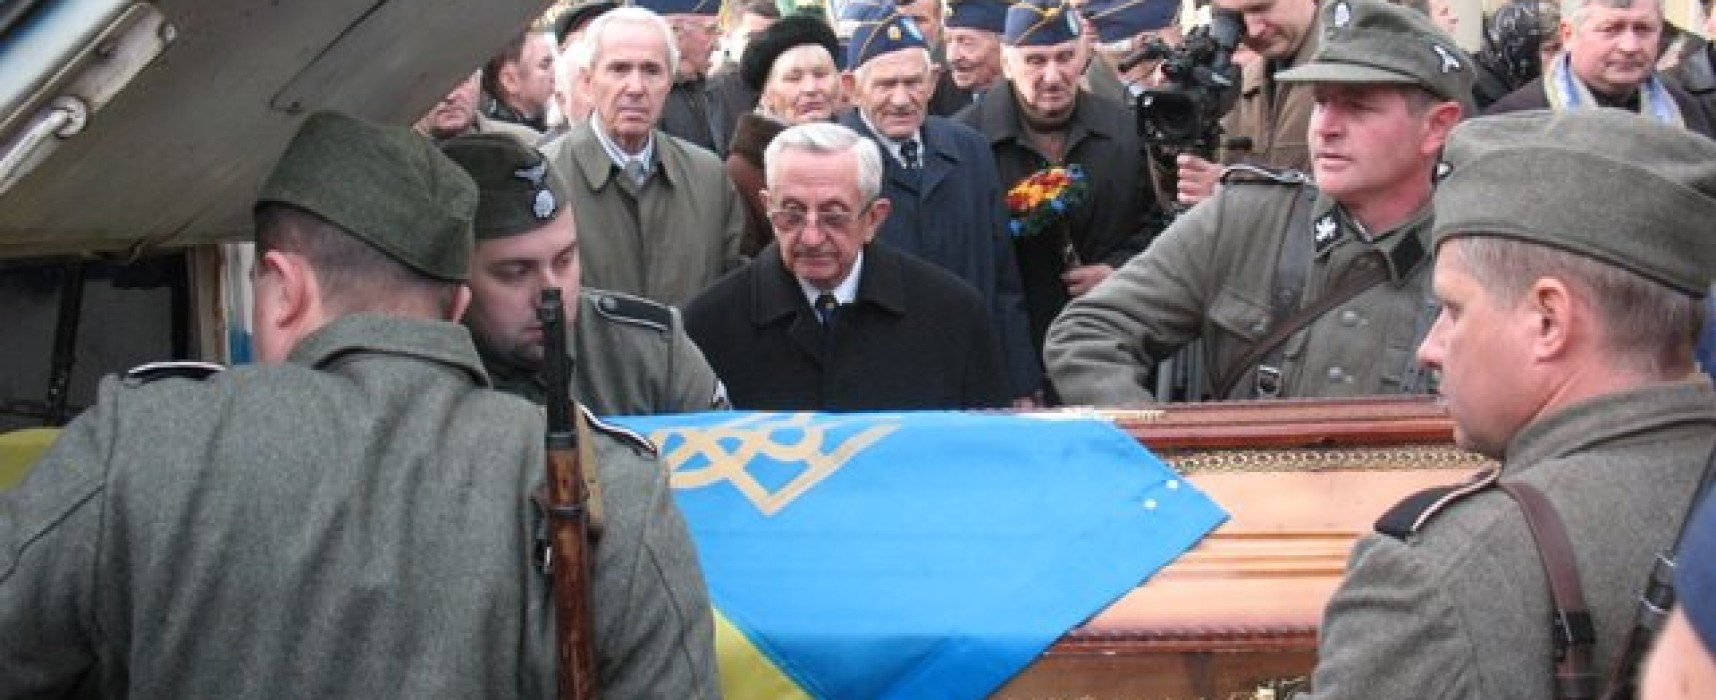 Photos of the SS-Volunteer Division «Galician» Veteran Funeral Presented as the Current Events in Ukraine